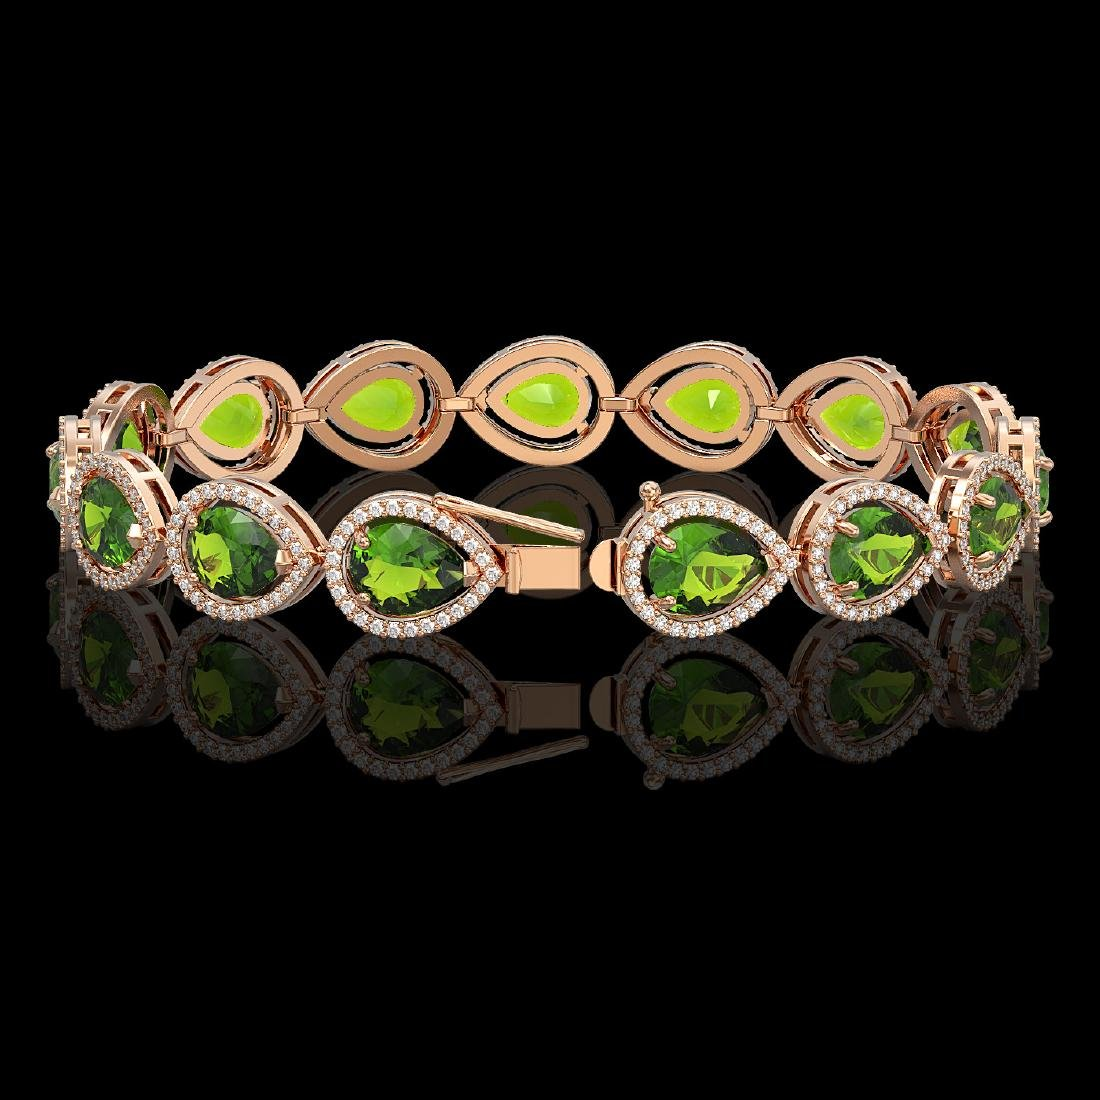 15.8 CTW Peridot & Diamond Halo Bracelet 10K Rose Gold